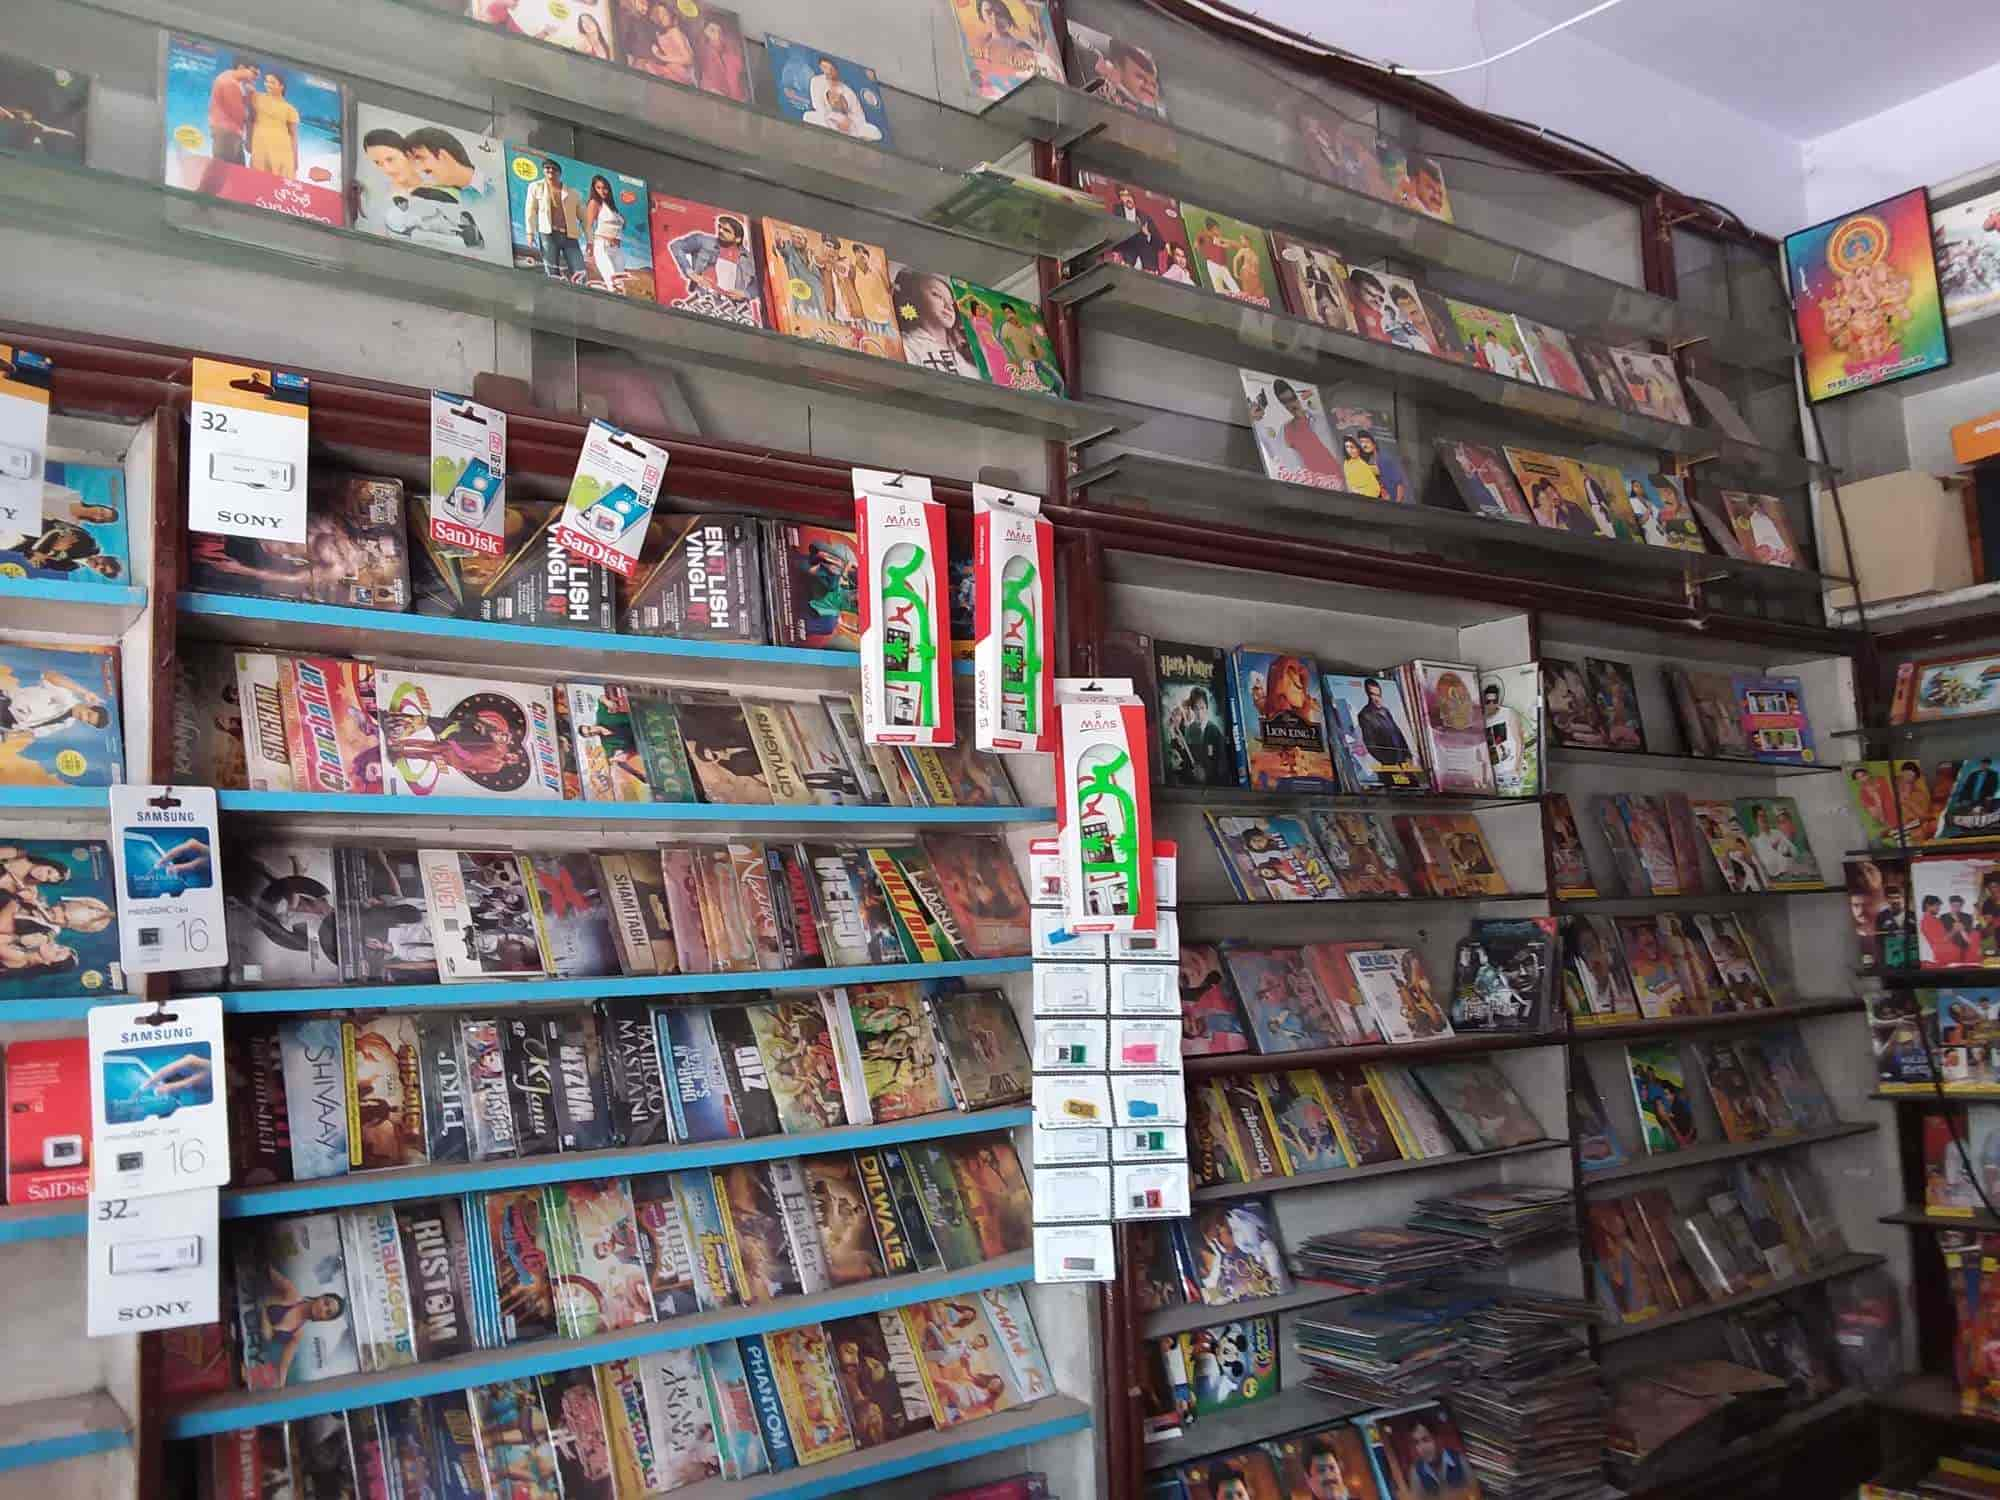 Music World Photos, Malkajgiri, Hyderabad- Pictures & Images Gallery